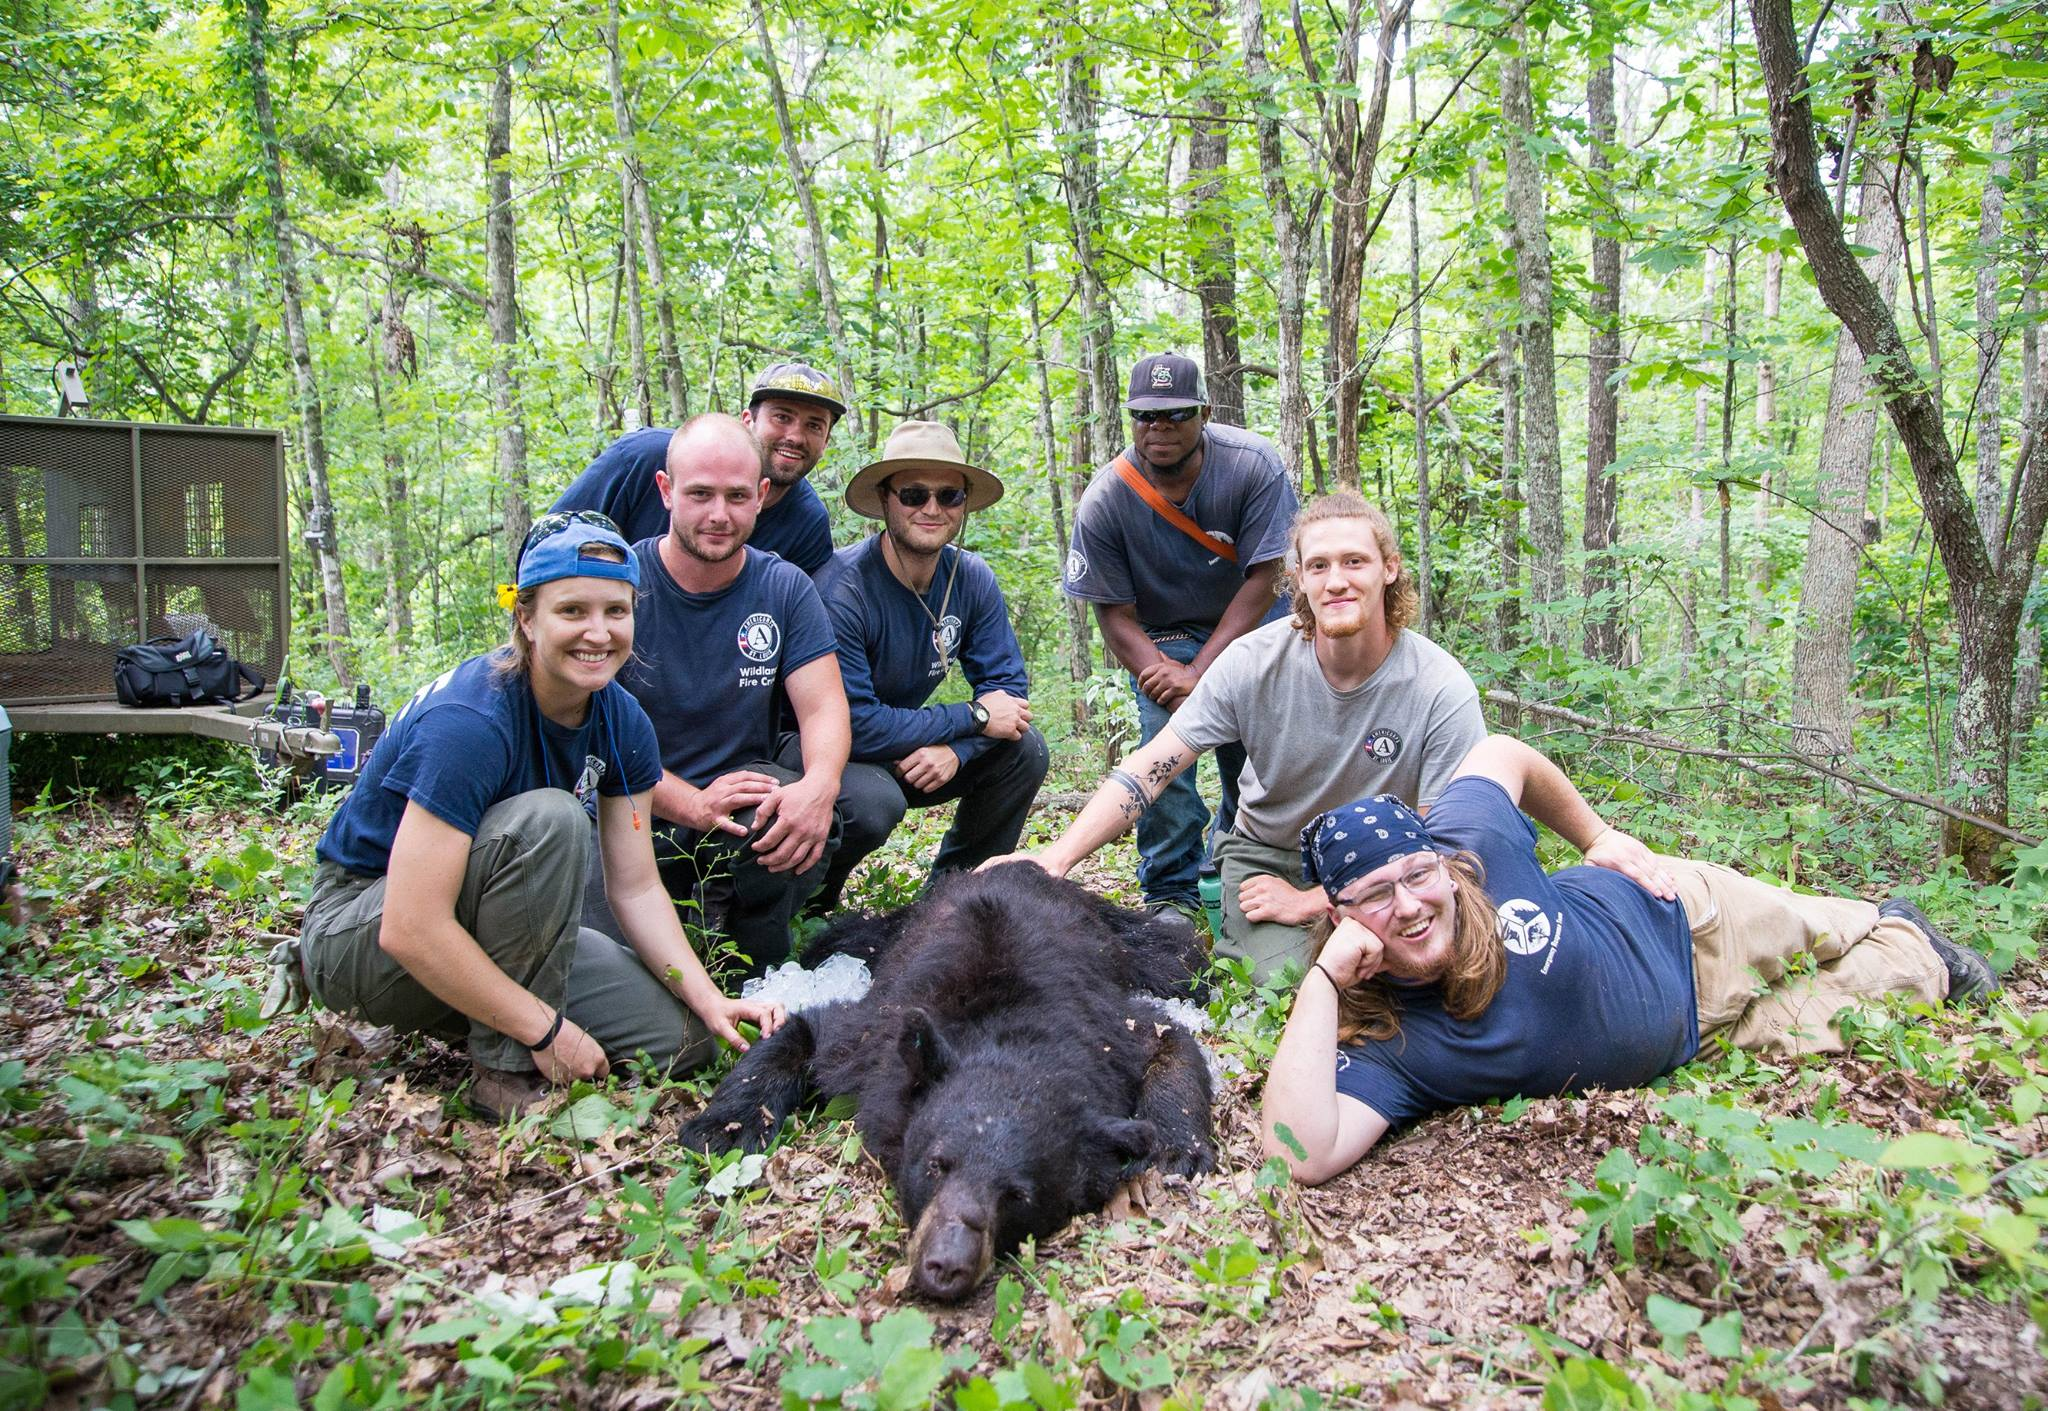 Year 23 Members assist the Missouri Department of Conservation with bear tagging in Seymour, MO, 2017. Members helped measure and weigh the bear for further research on bear movement throughout the Ozarks region of Missouri (Photo by Lucas Peterson, Year 23)